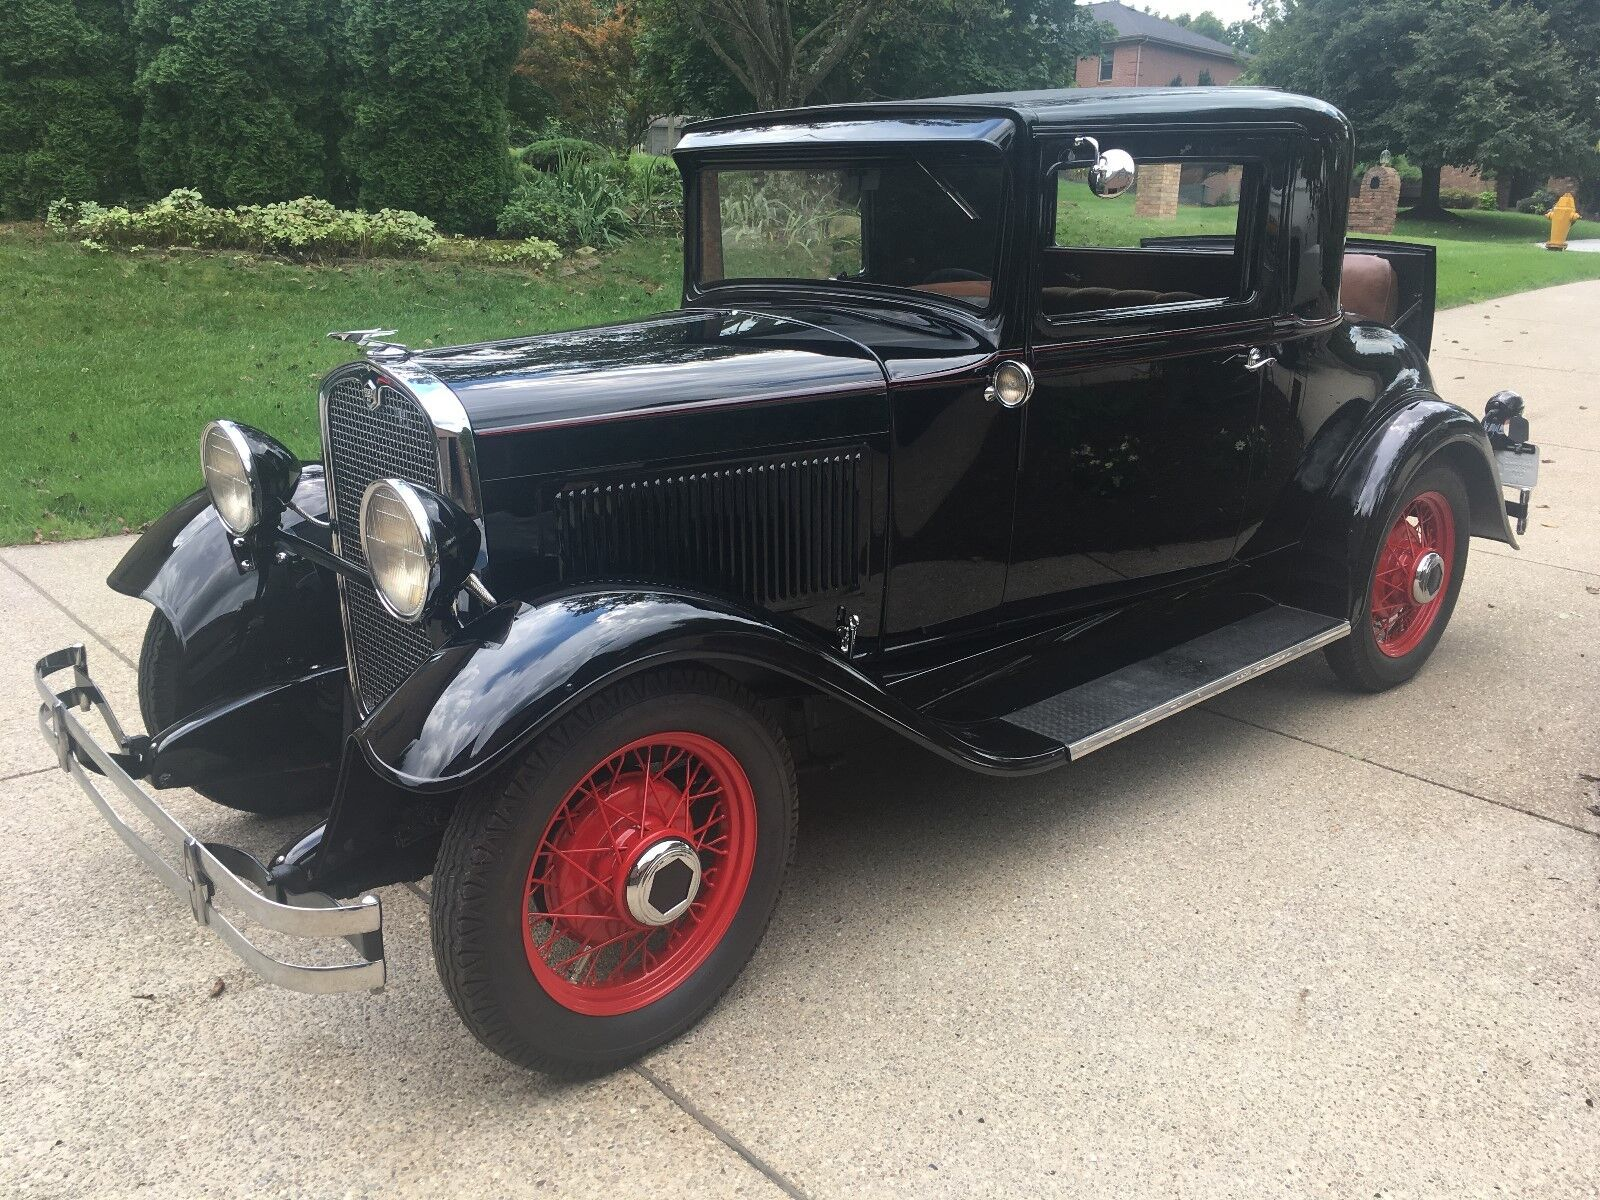 1931 Essex Rumble Seat Coupe  1931 Hudson Essex Super Six Rumble Seat Coupe